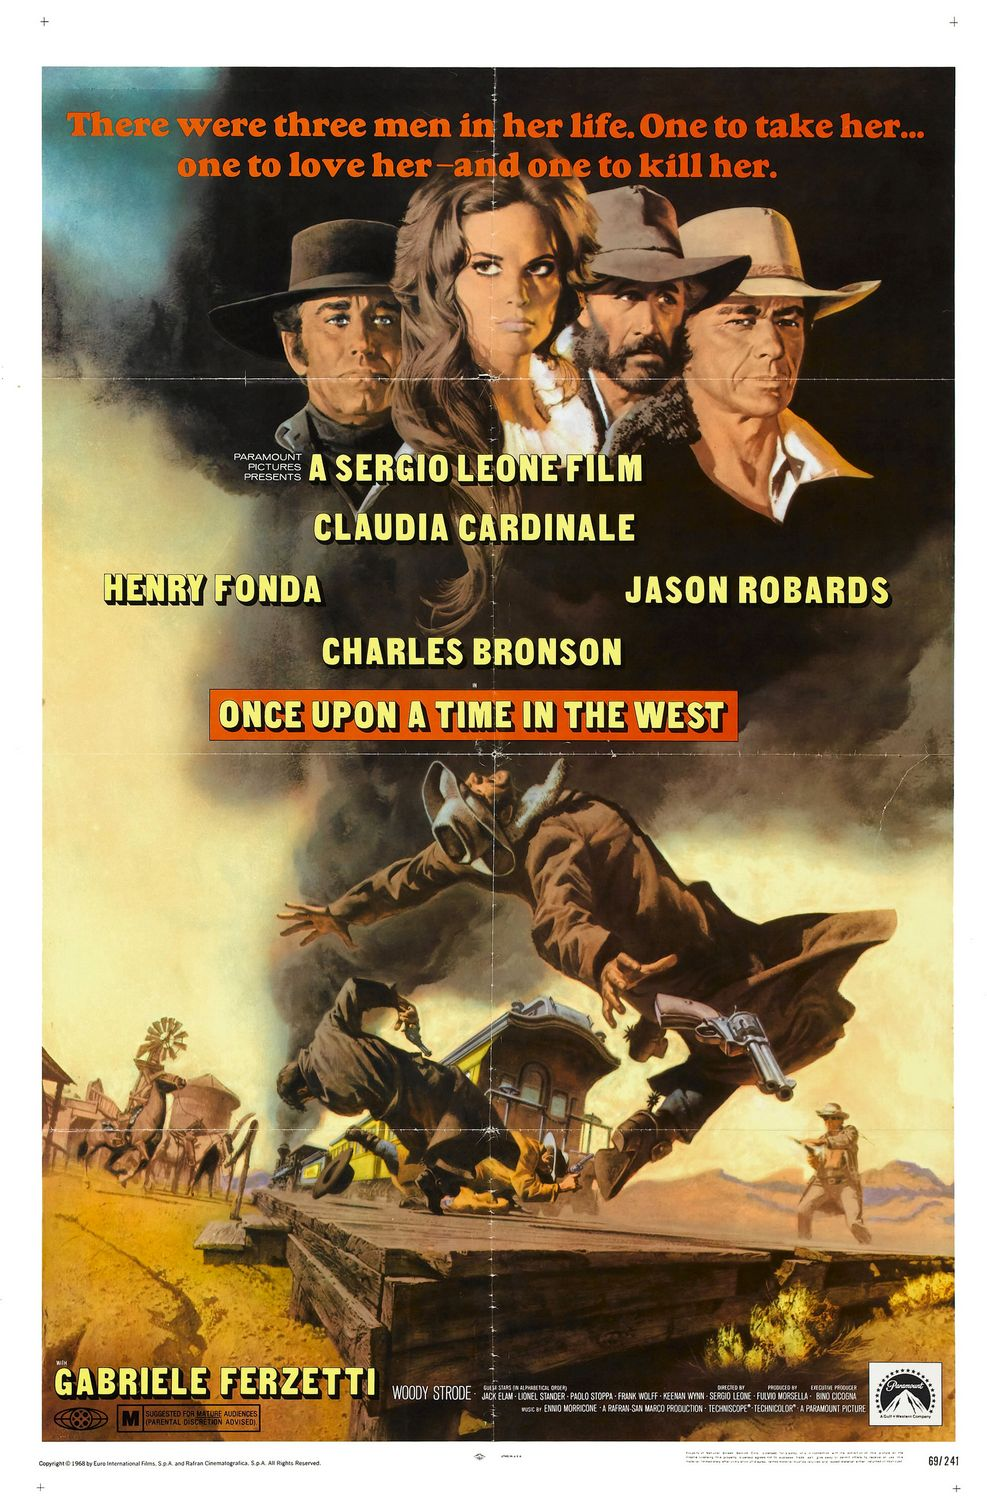 20171223.once.upon.a.time.in.the.west.1968